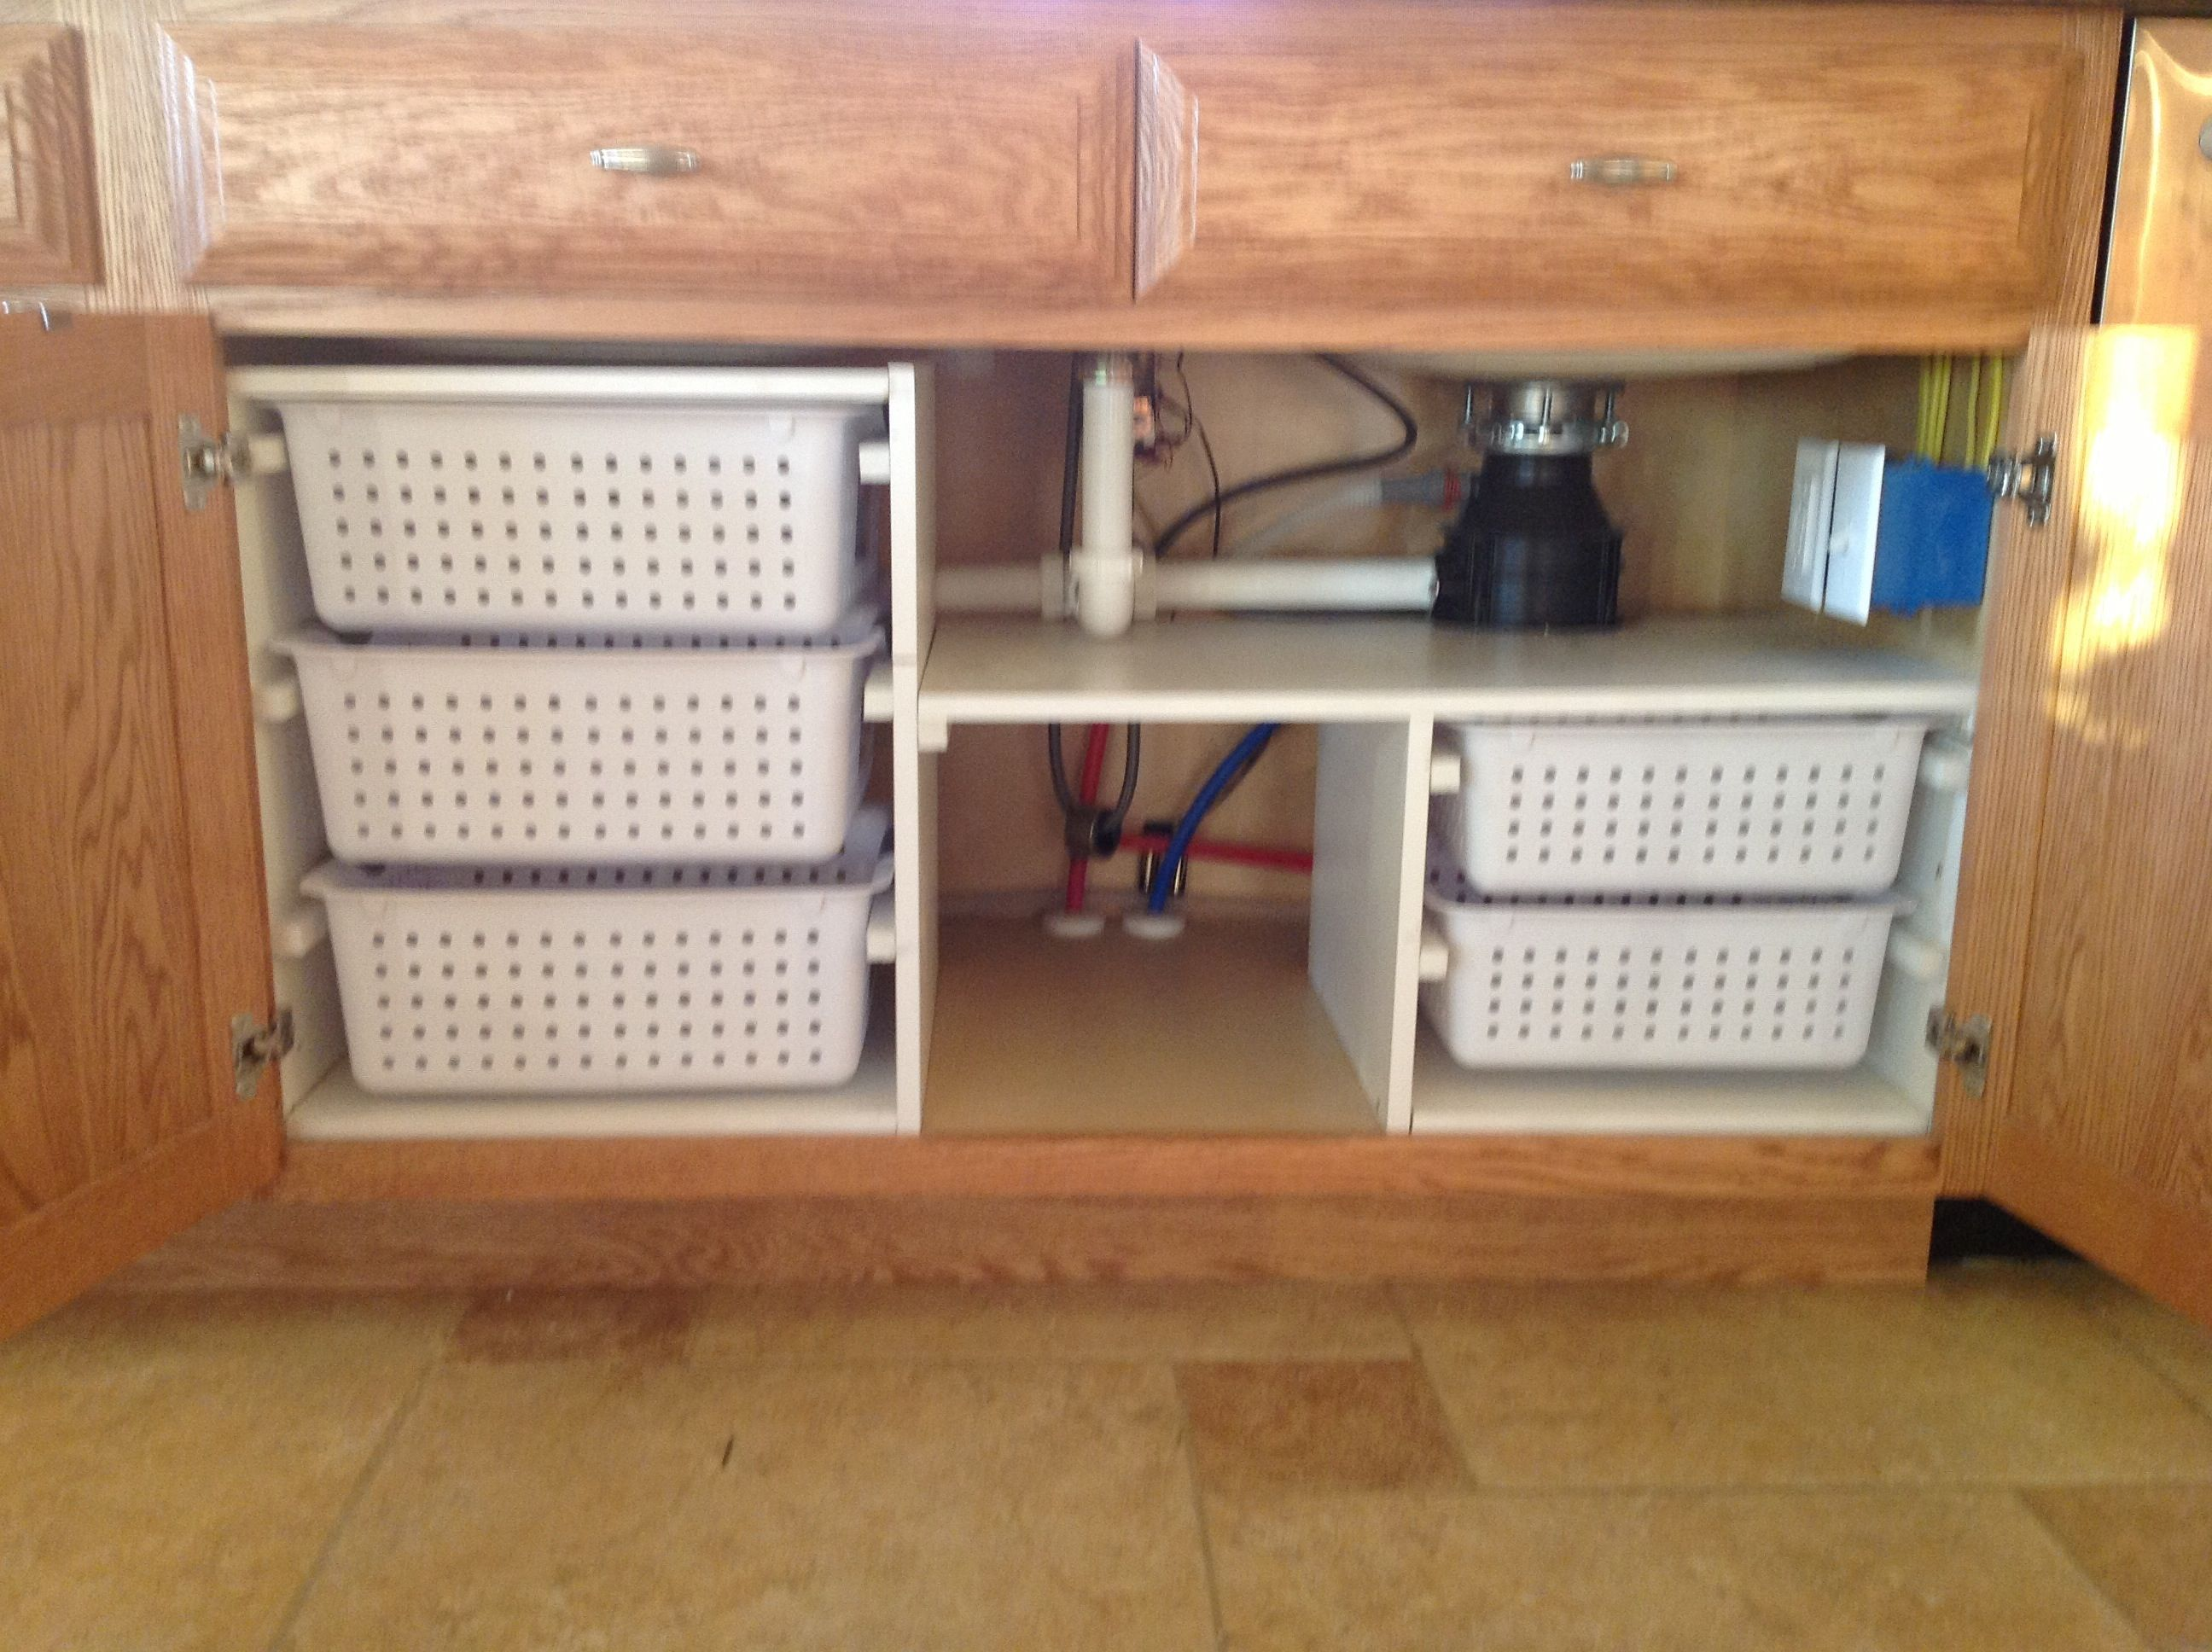 Under Kitchen Sink Organization My Husband Built For